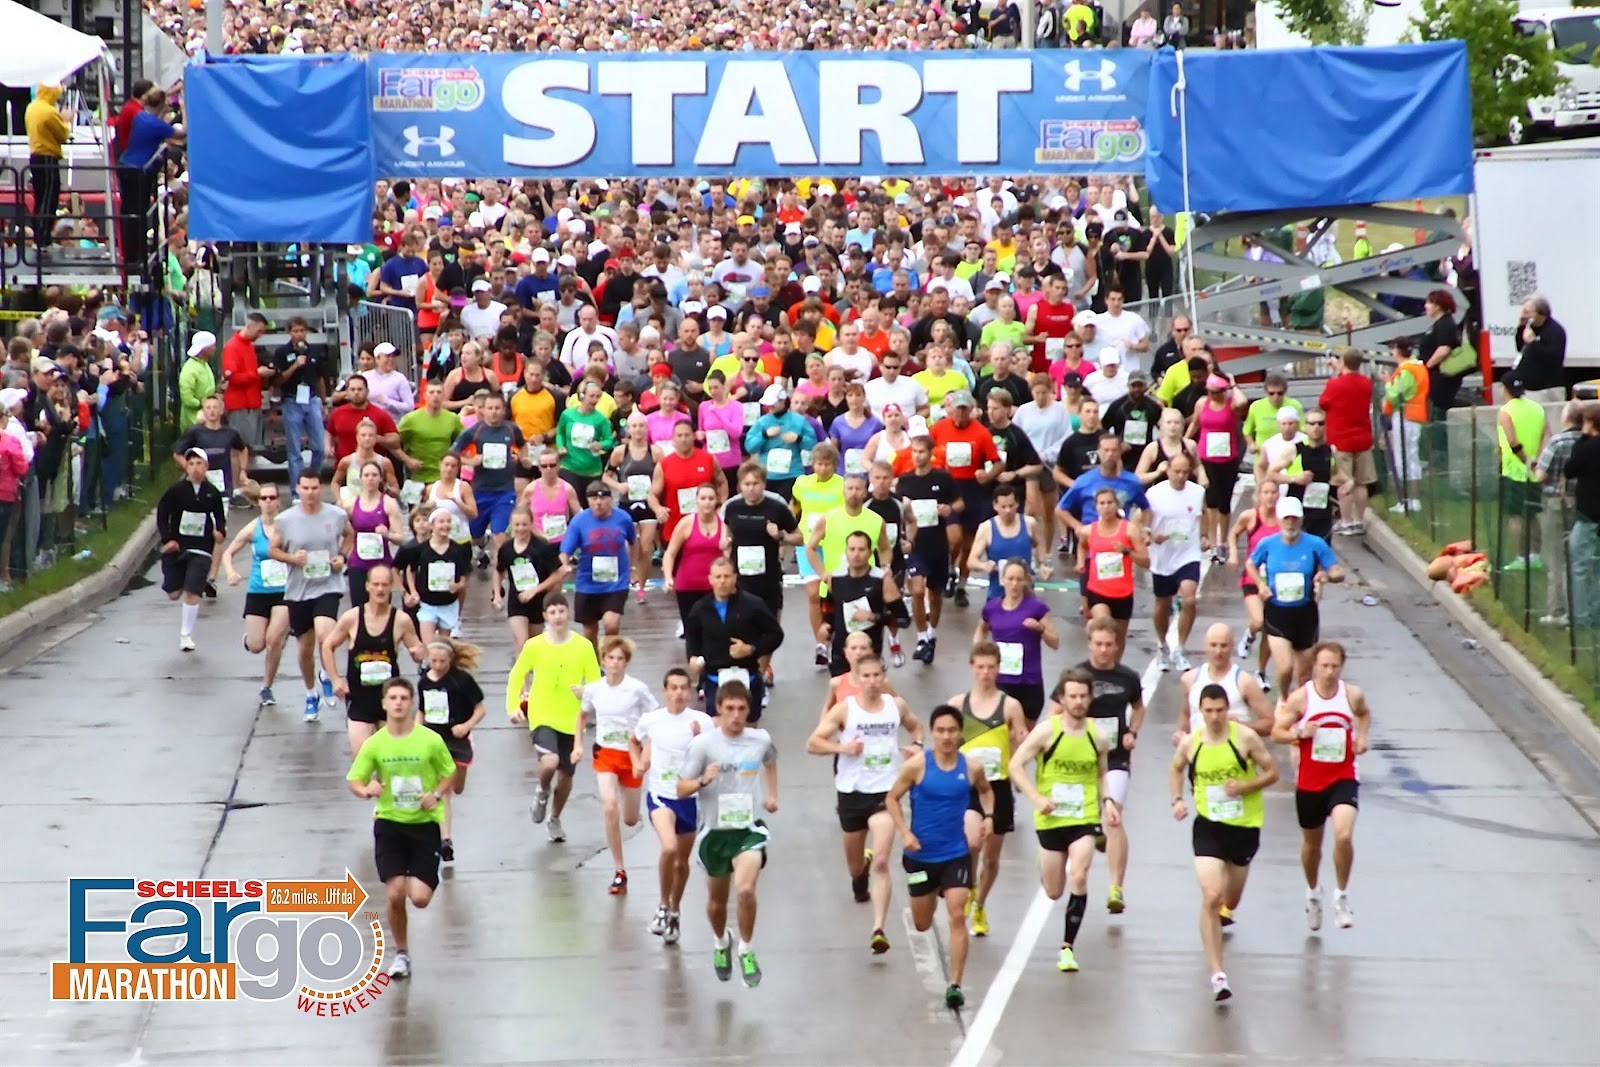 This year's Red River flood is forcing the organizers of the Fargo Marathon to make some course changes